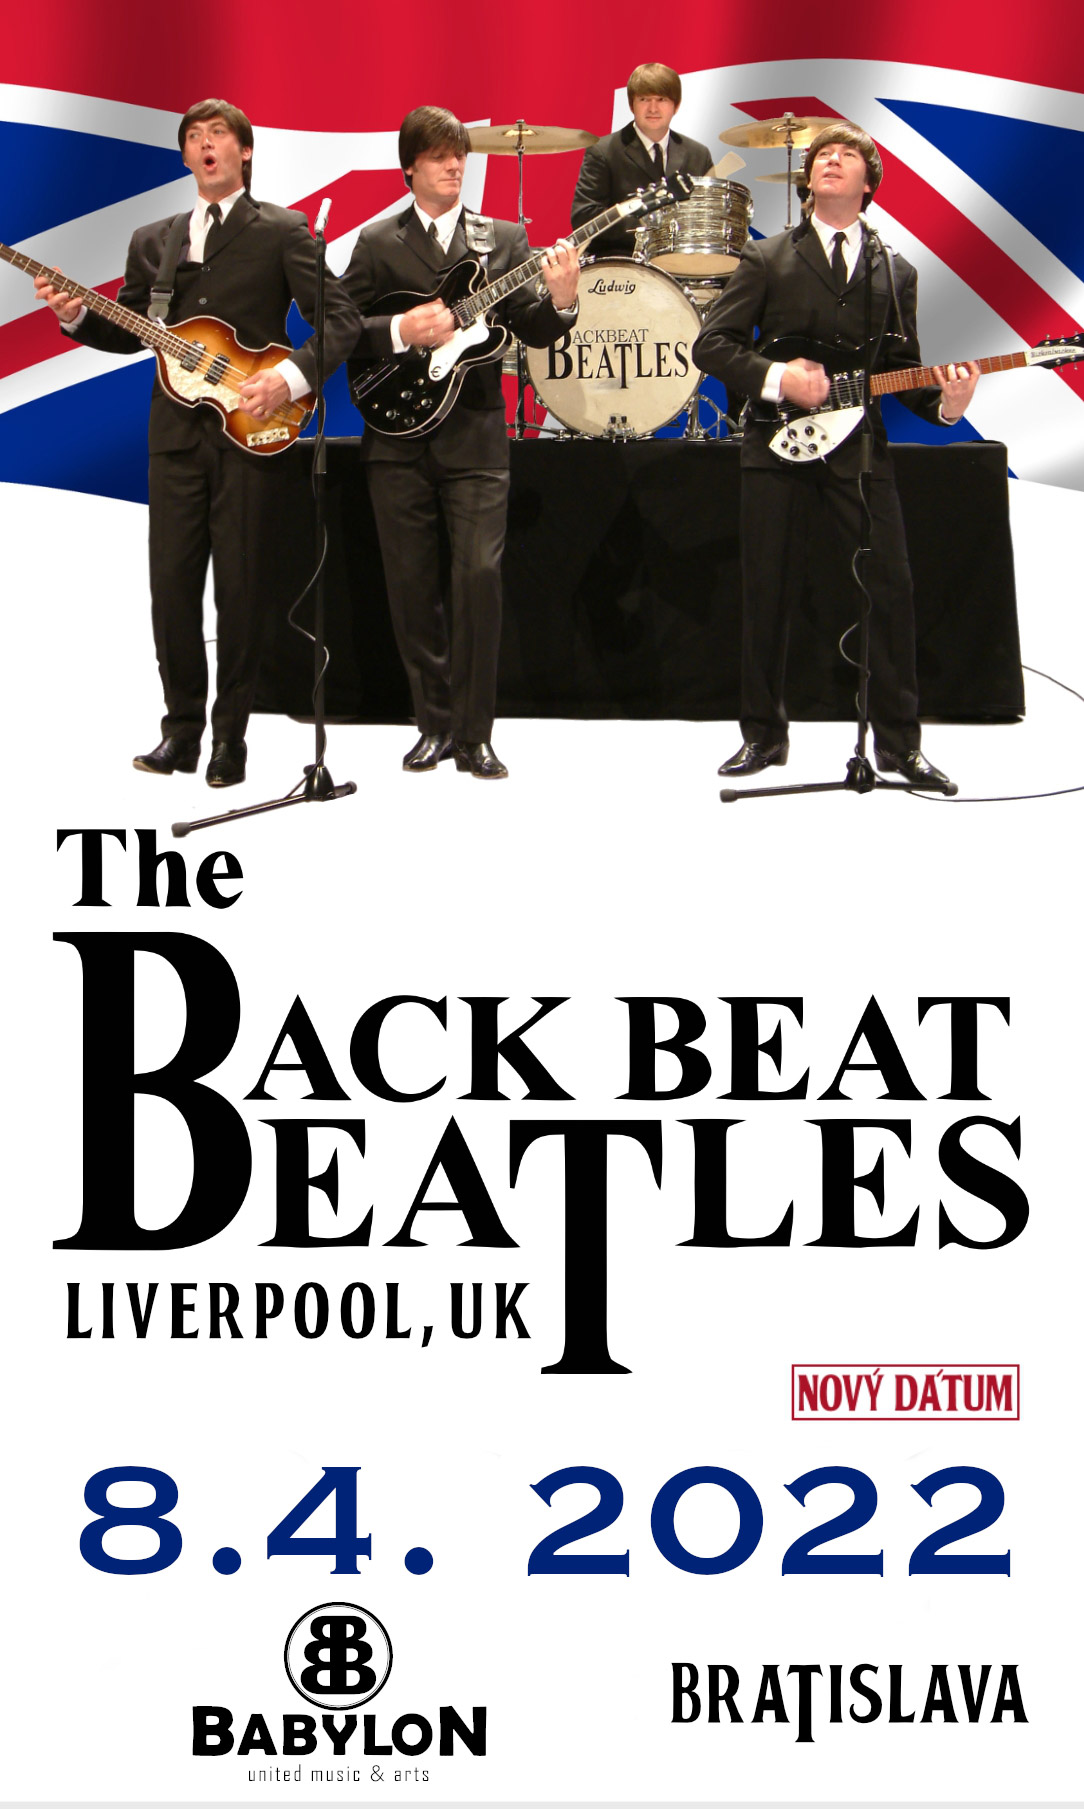 picture The Backbeat Beatles show